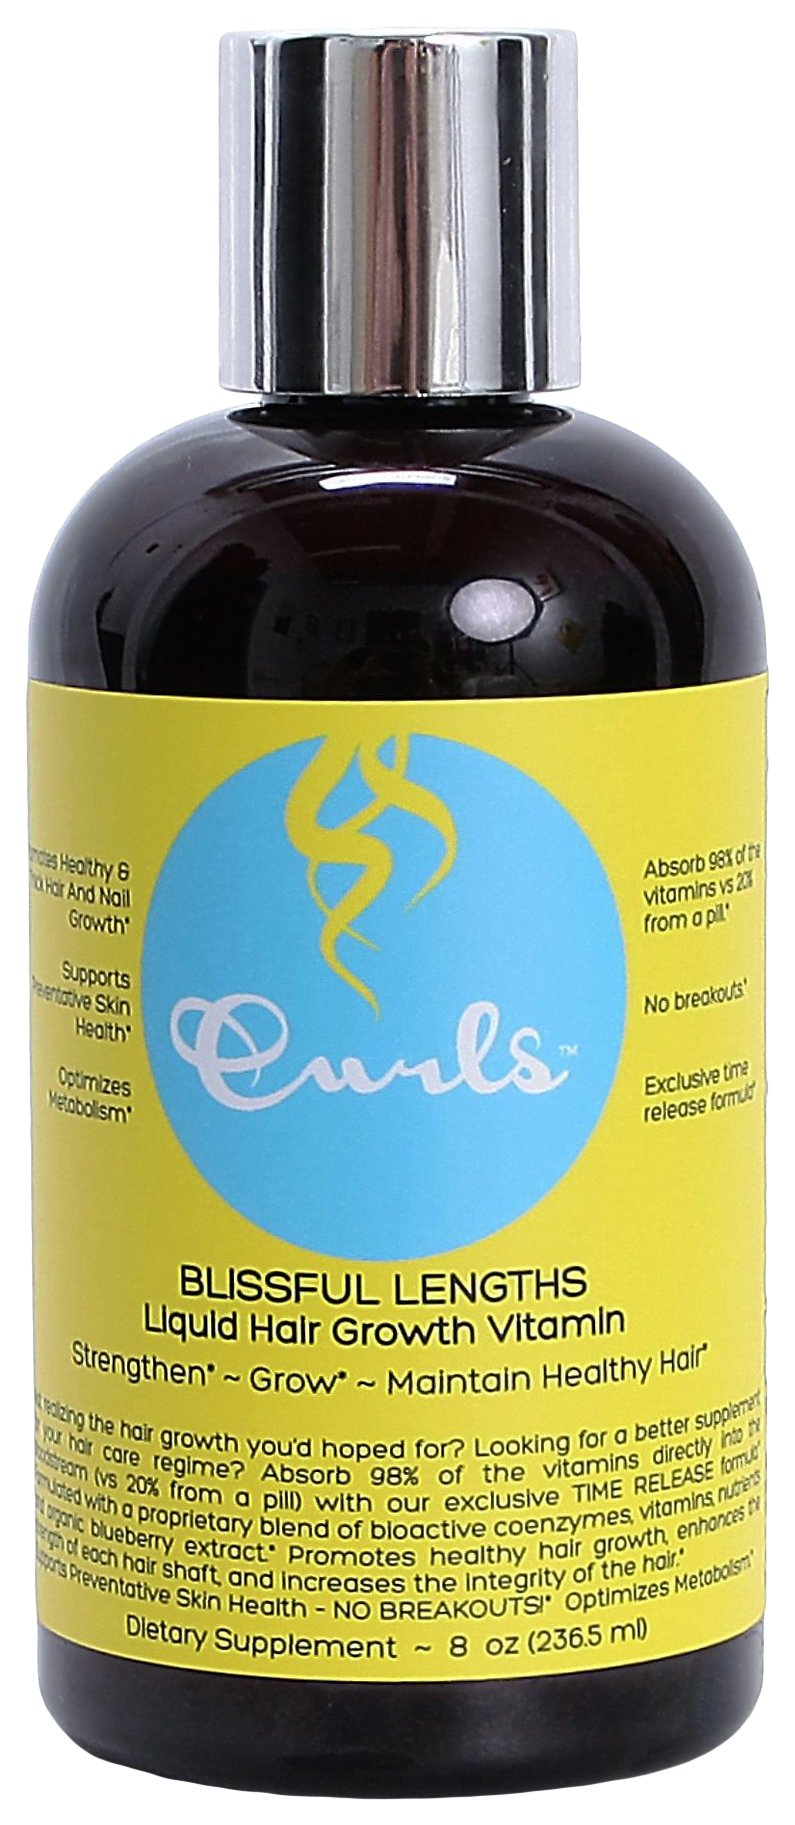 It's A Curl Peek A Boo Tearless Organic Baby Shampoo, 4-Ounce Bottle (Pack of 2) by It's A Curl